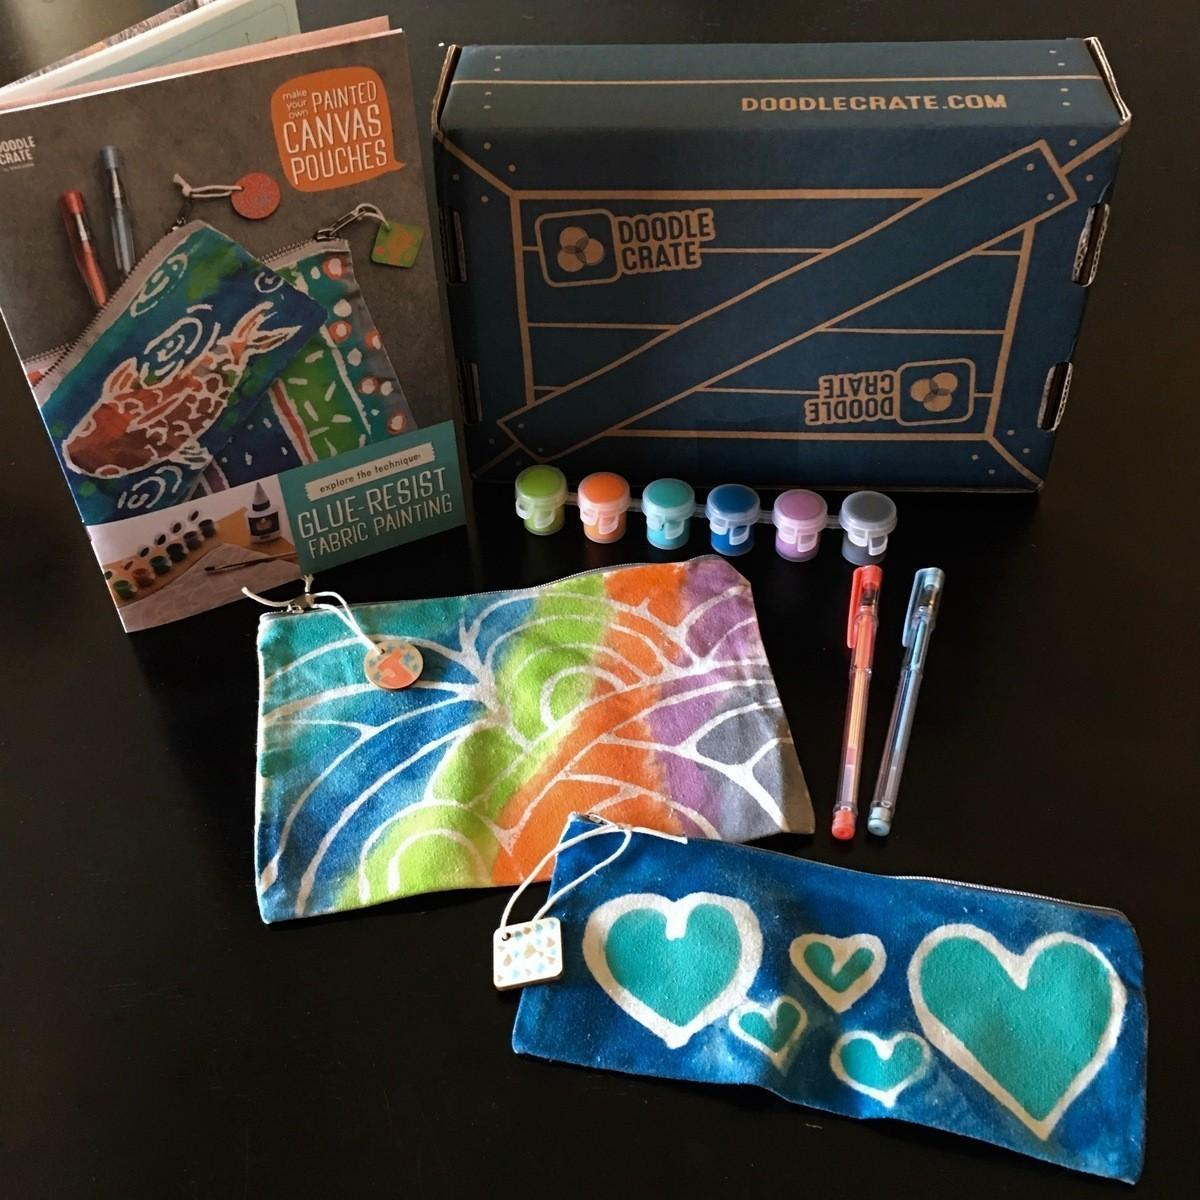 Doodle Crate Review + Coupon Code – August 2017